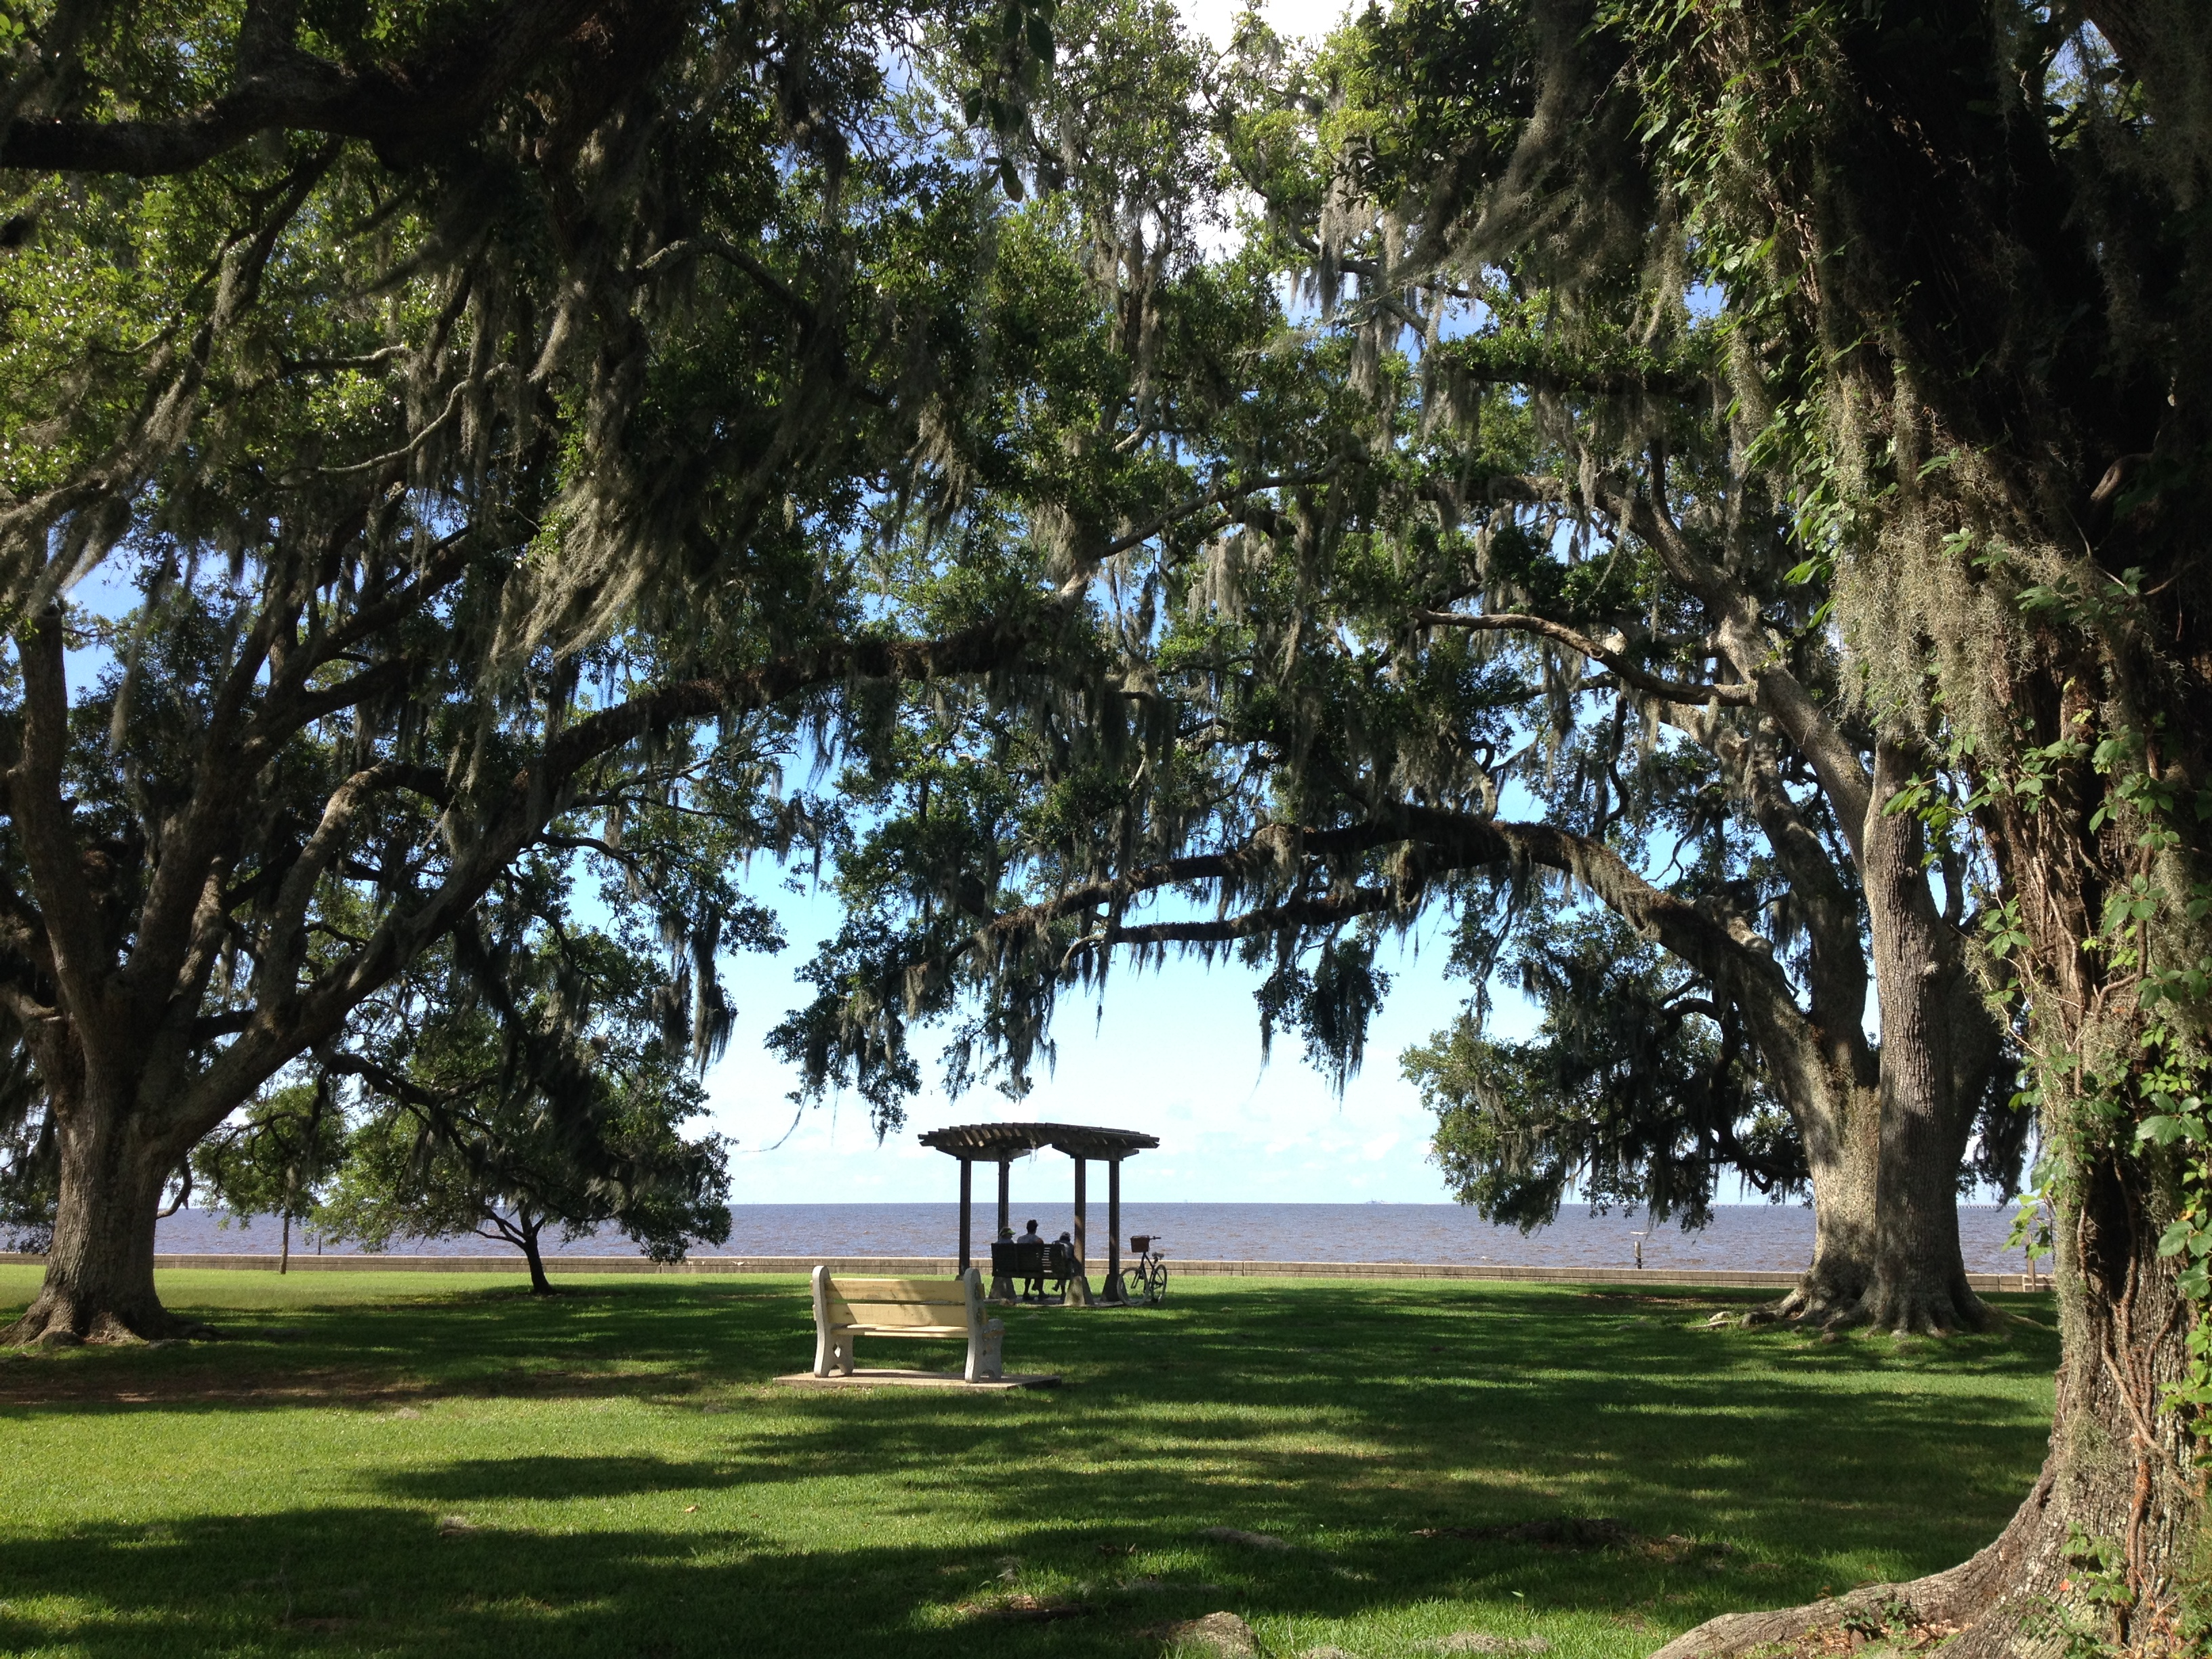 Mandeville Lakefront arbor and swing photo courtesy LouisianaNorthshore.com